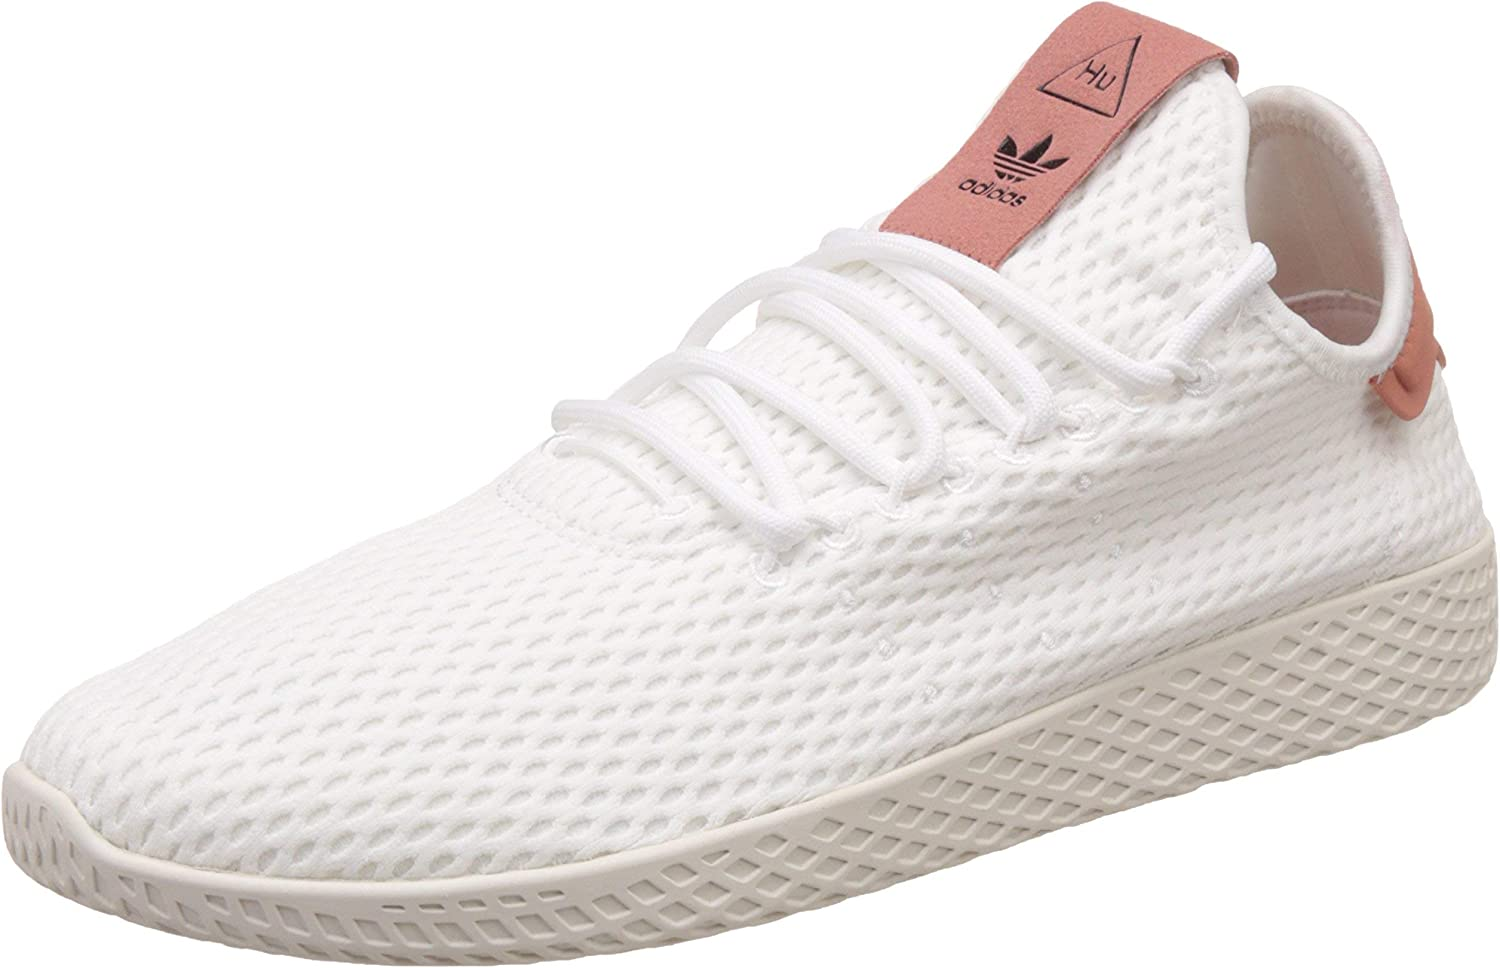 adidas schoenen pharrel williams